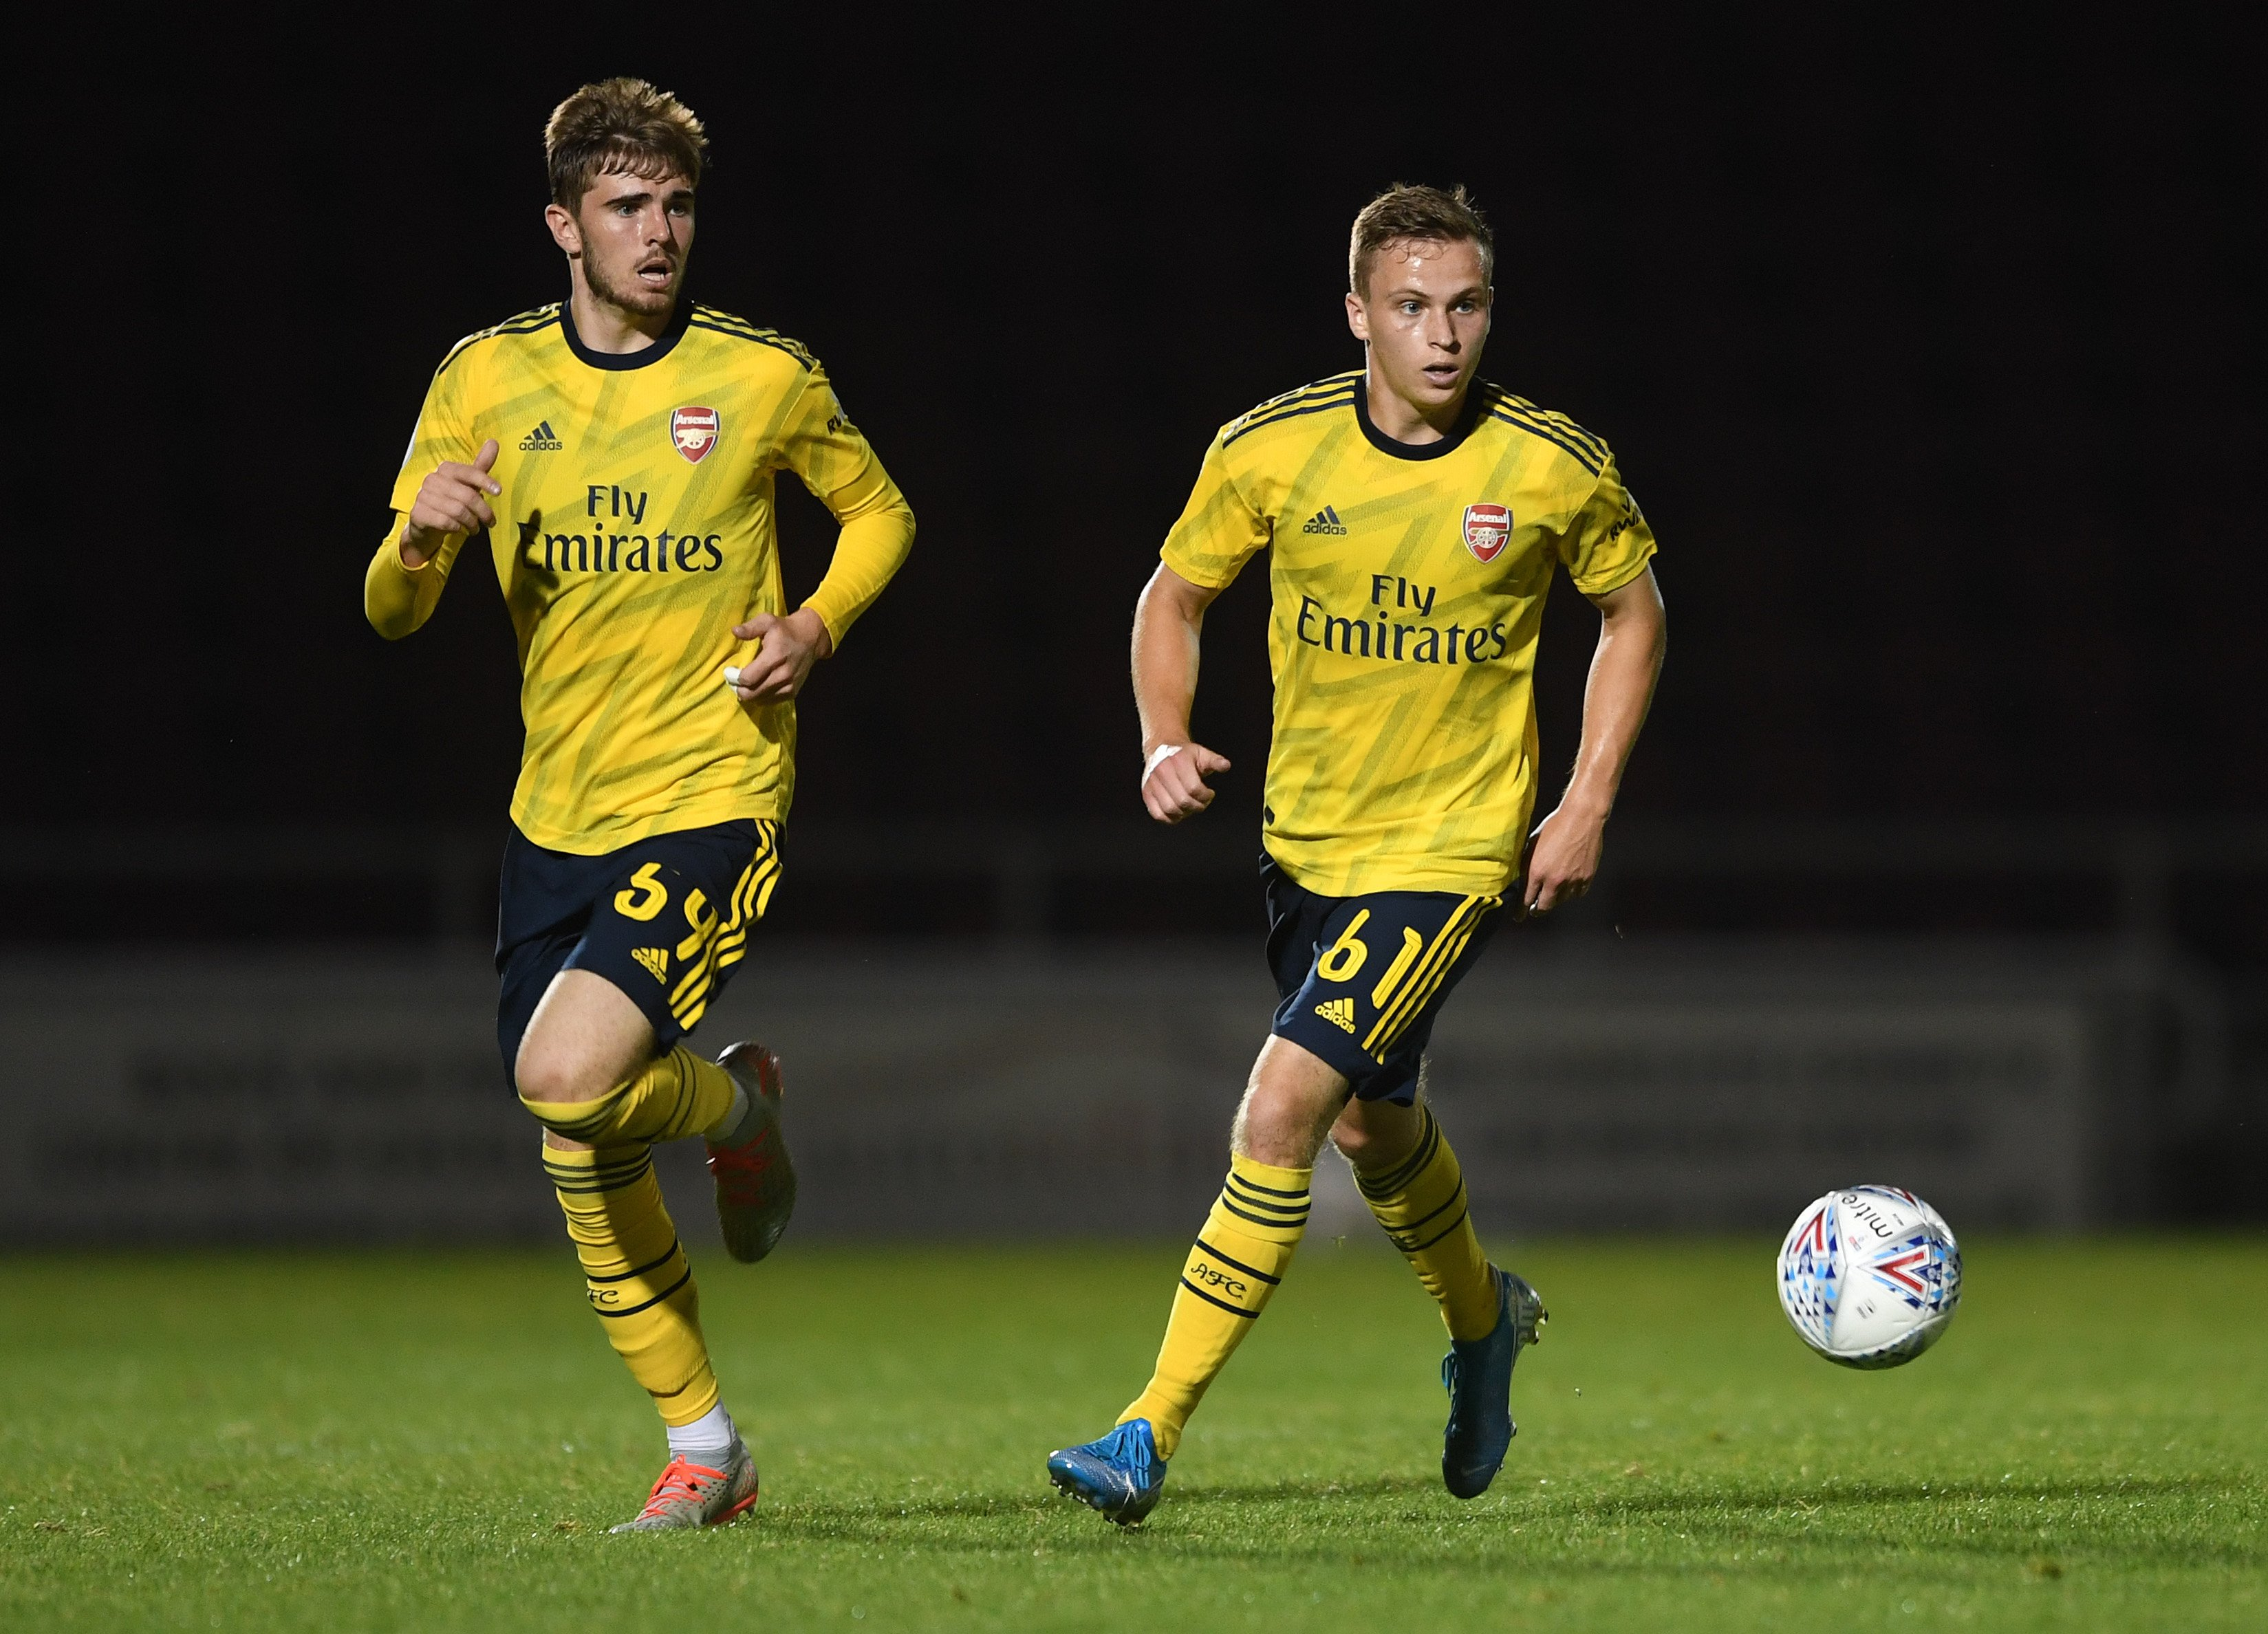 Zak Swanson and Nathan Tormey with the Arsenal u21s against Peterborough United (Photo via Twitter / ArsenalAcademy)